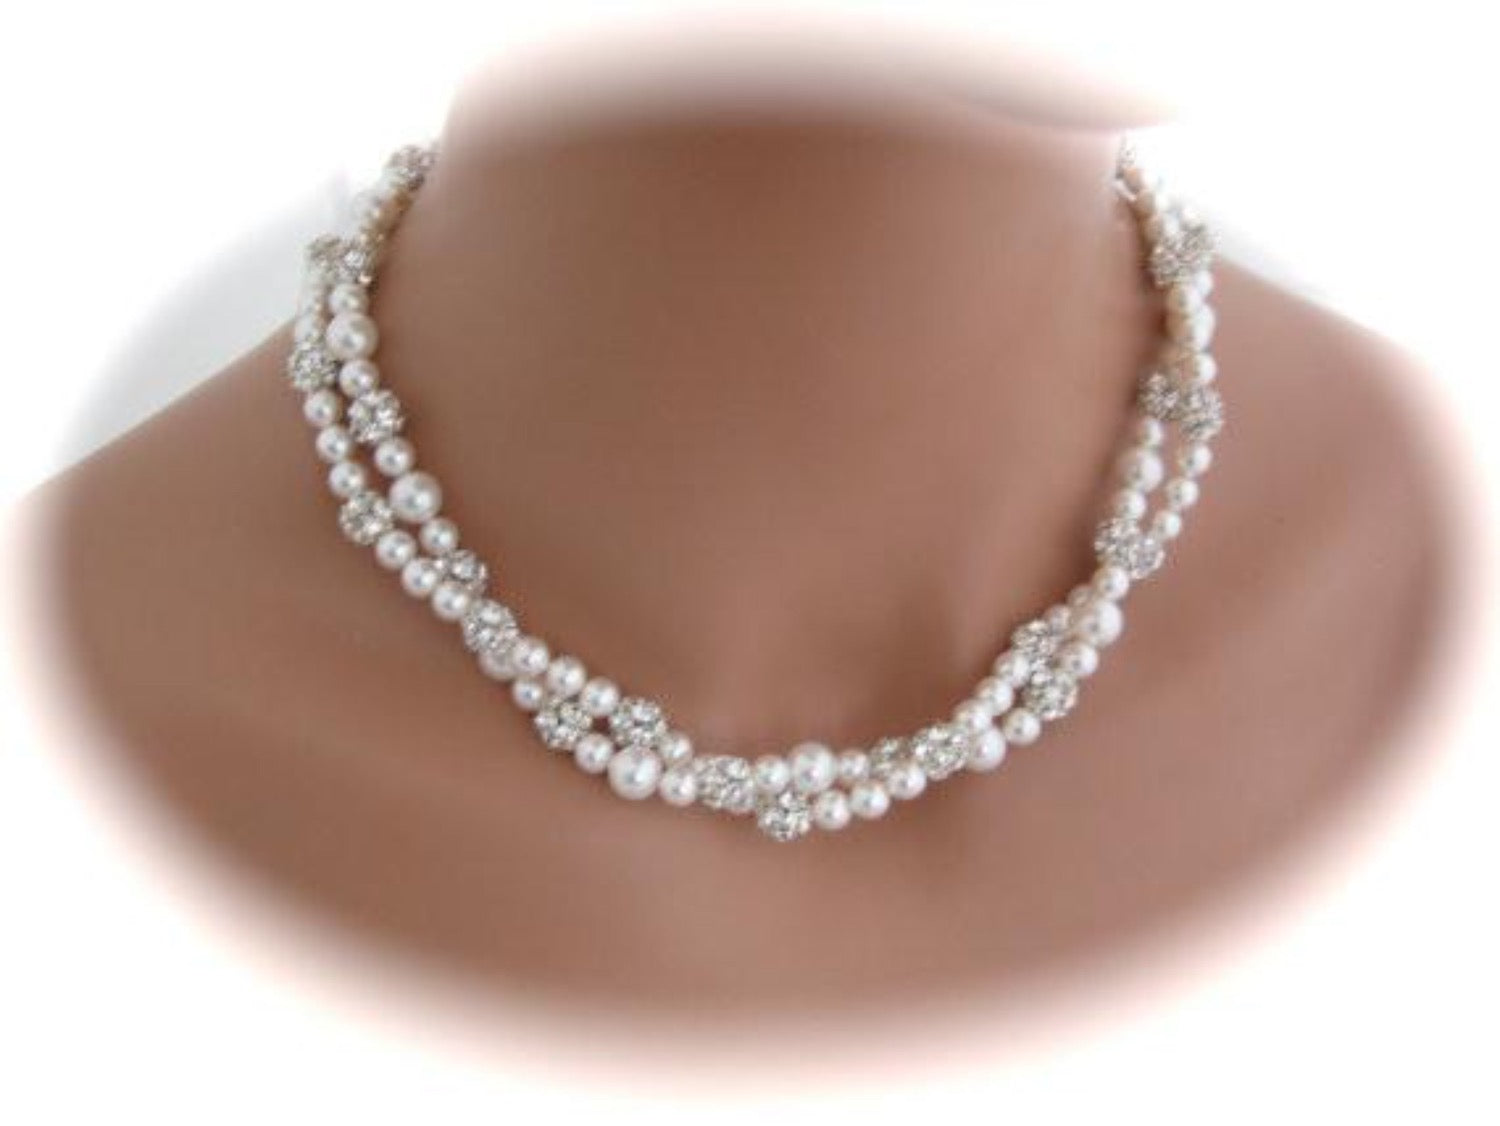 Double strand Pearl and Rhinestone Necklace Wedding Jewelry - Clairesbridal